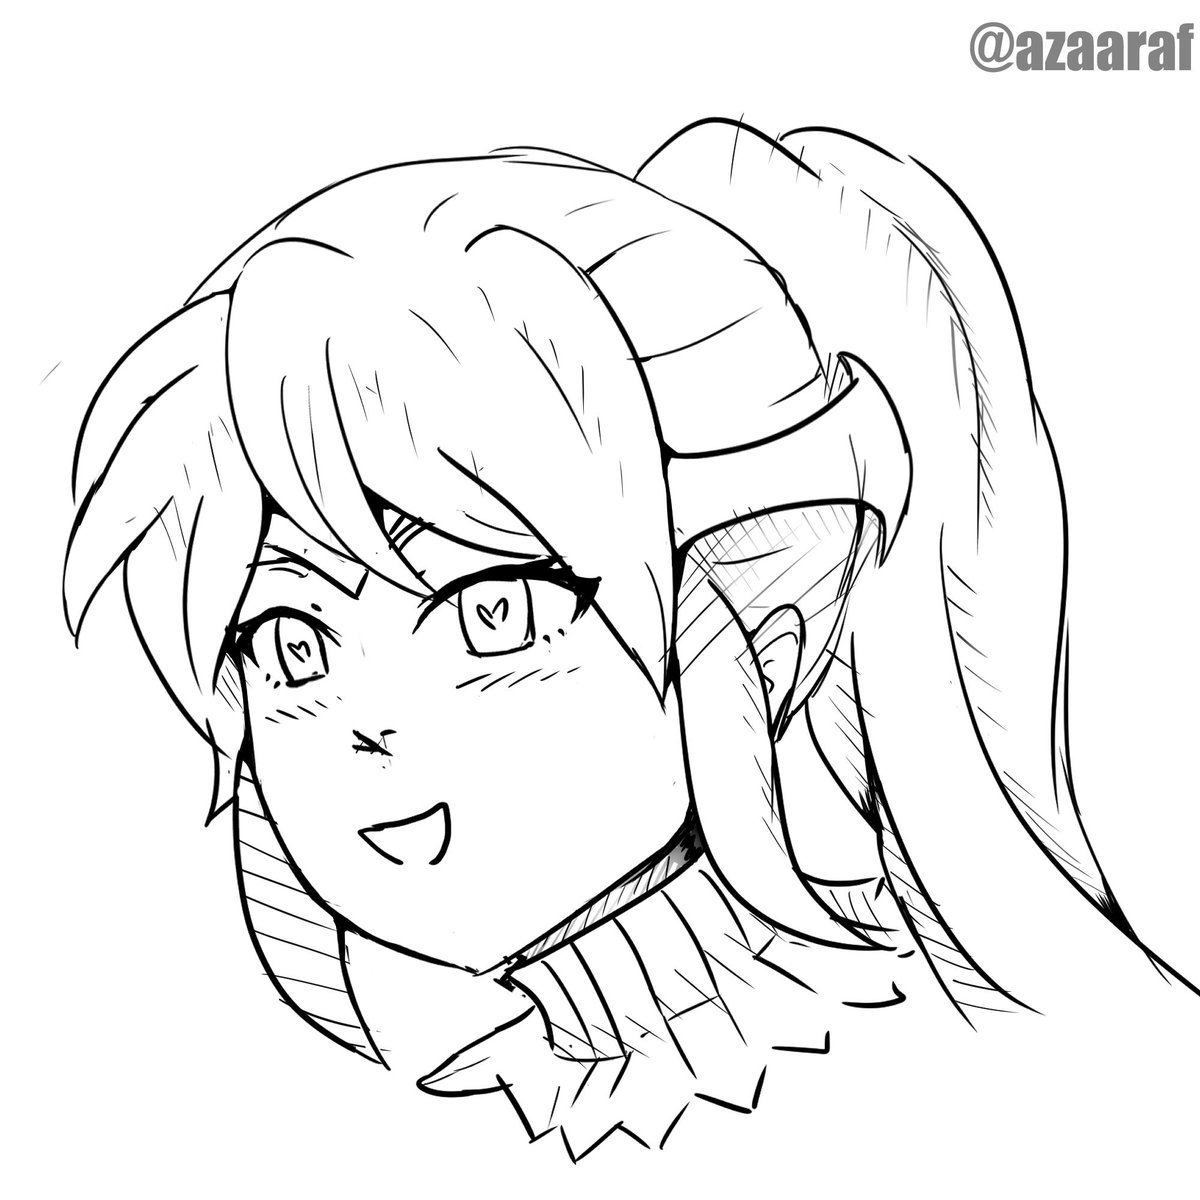 test Twitter Media - Just realized I never drew best girl Pyrrha so here's a quick ink sketch. #RWBY #RWBY7 https://t.co/6FT4a1Z4Vj